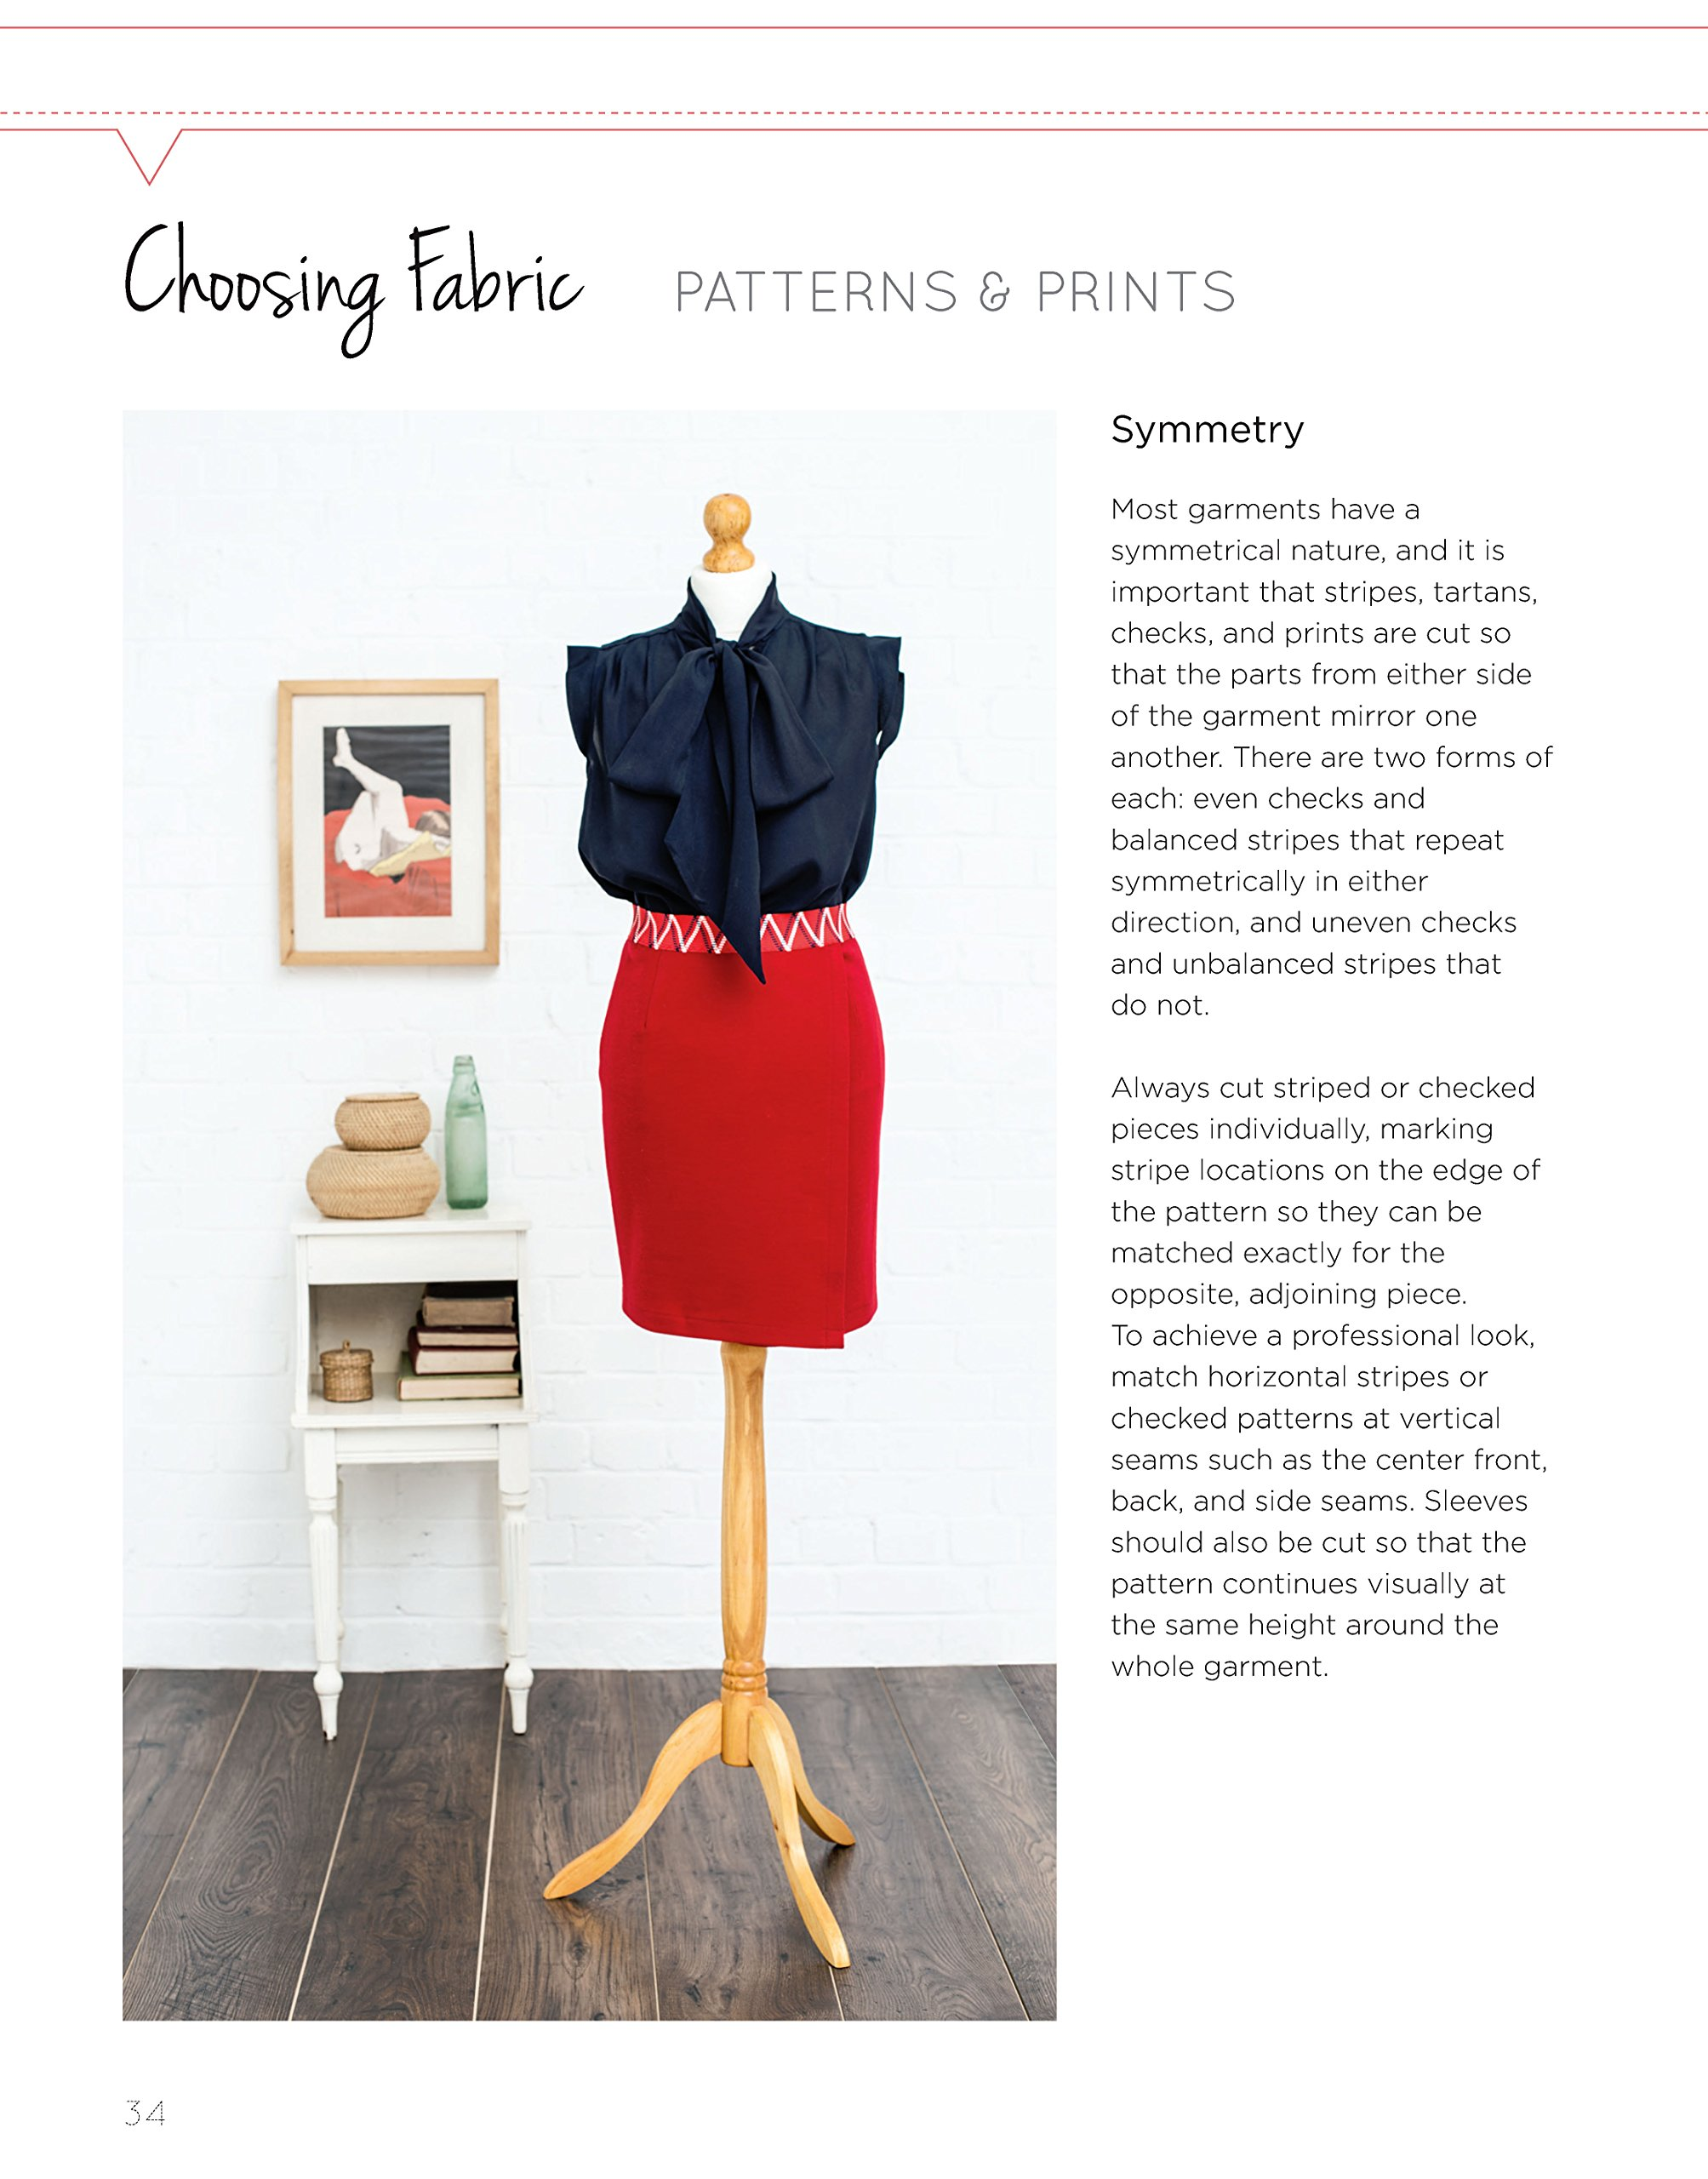 Pattern Making Templates For Skirts Dresses All You Need To Design Adapt And Customize Your Clothes Prier Alice 9781438010014 Amazon Com Books